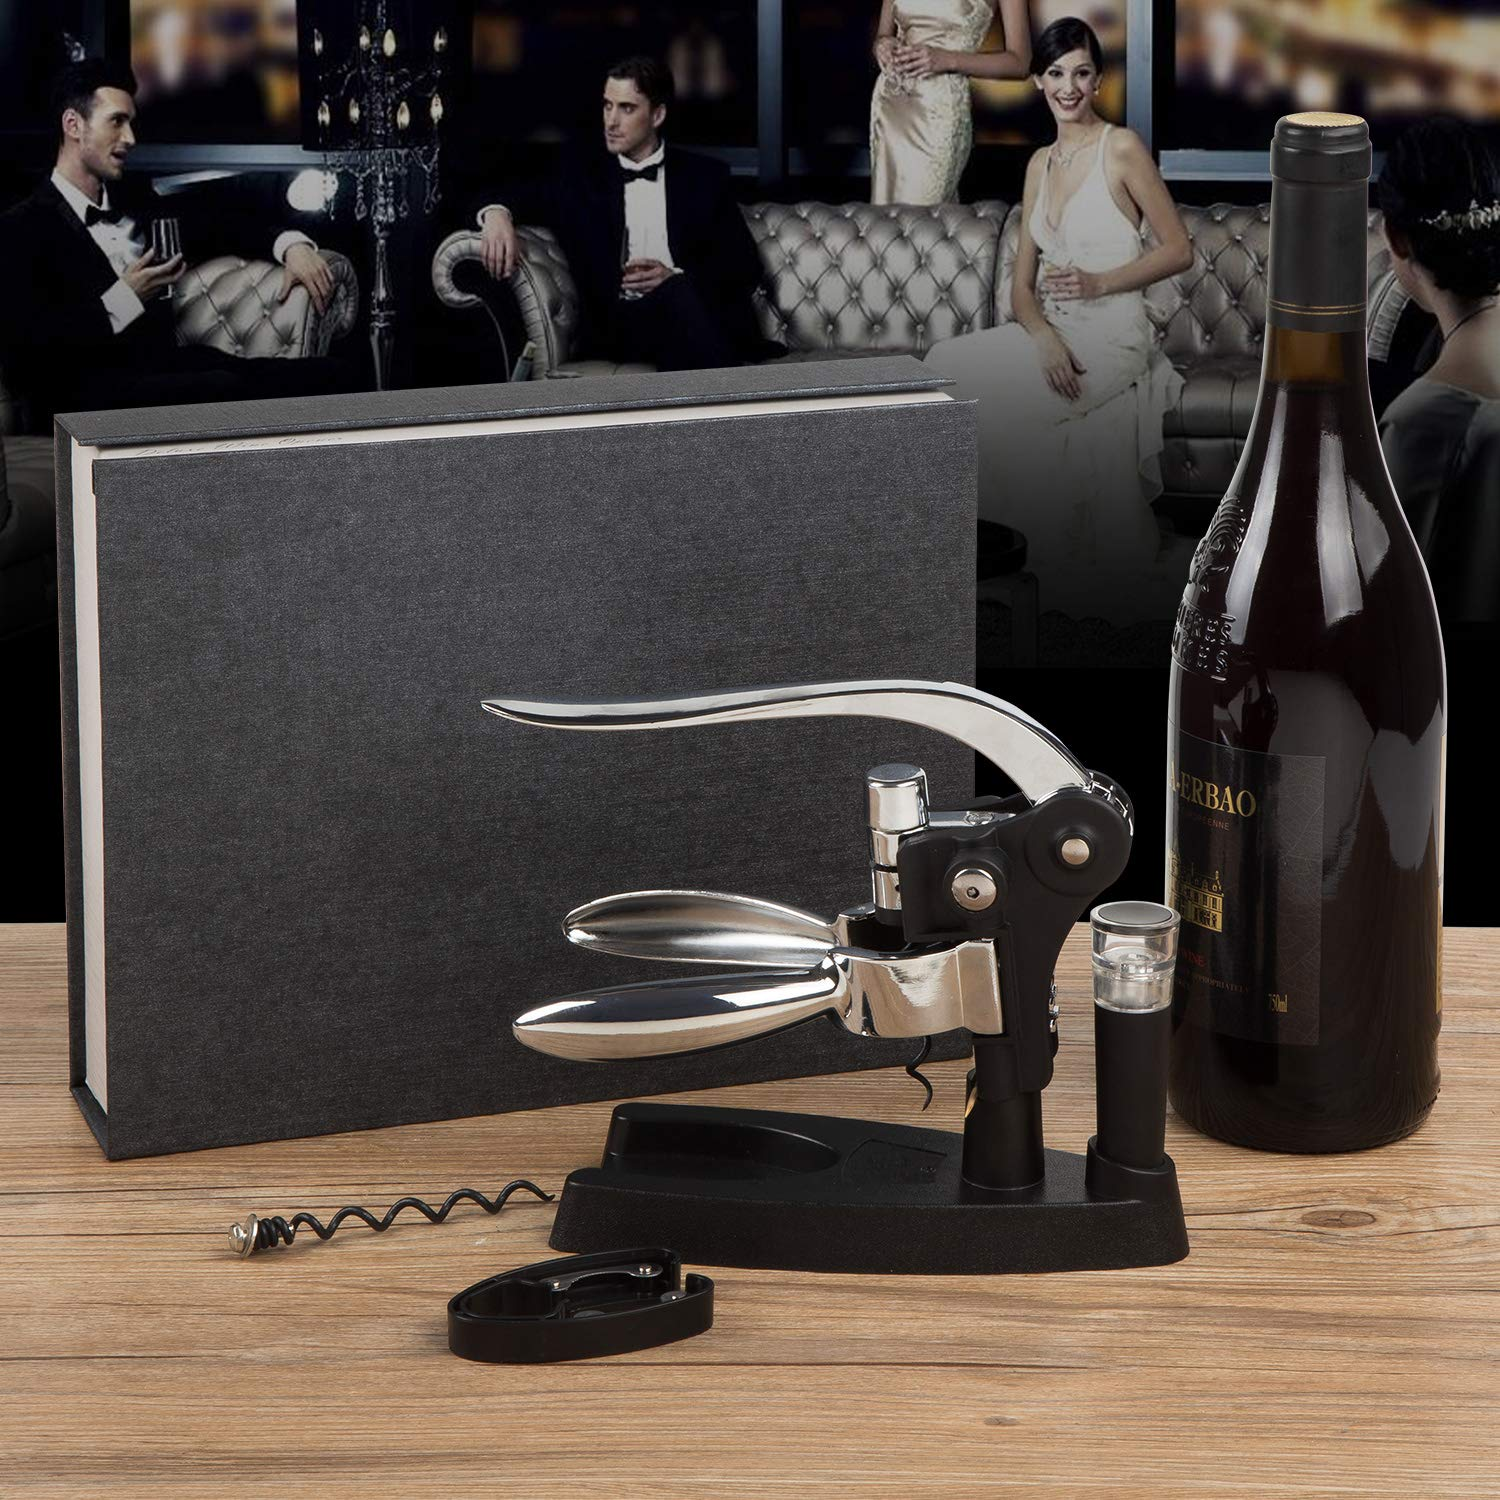 Wine Opener Screwpull Lever Rabbit Corkscrew Stylish Wine Accessory Gift Box Set with foil cutter extra spiral worm and vacuum pump&stopper by WTIANQI (Image #6)